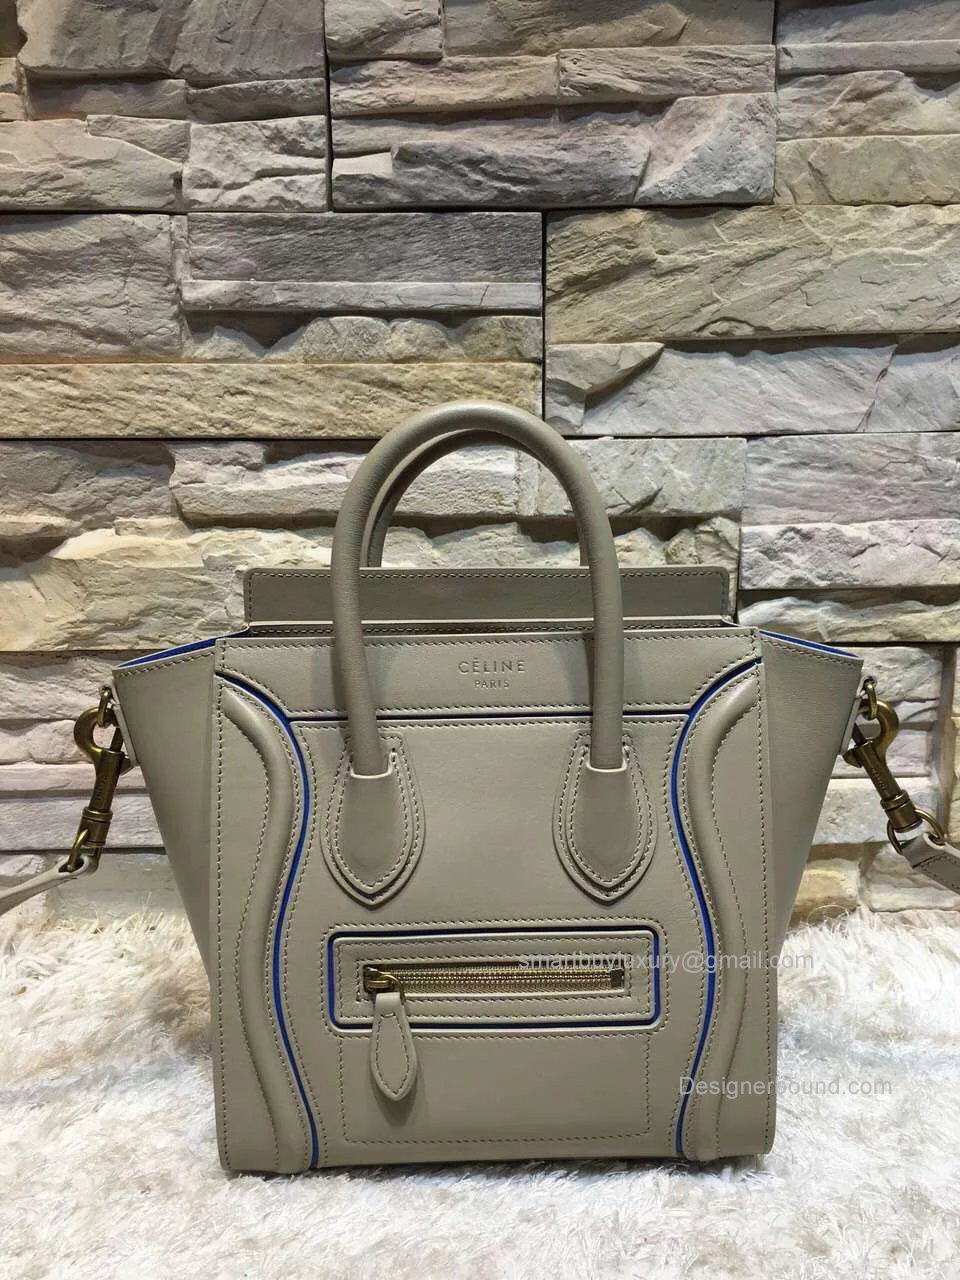 ad6094575 Replica Celine Nano Luggage Bag with Interstice in Light Grey Smooth  Calfskin